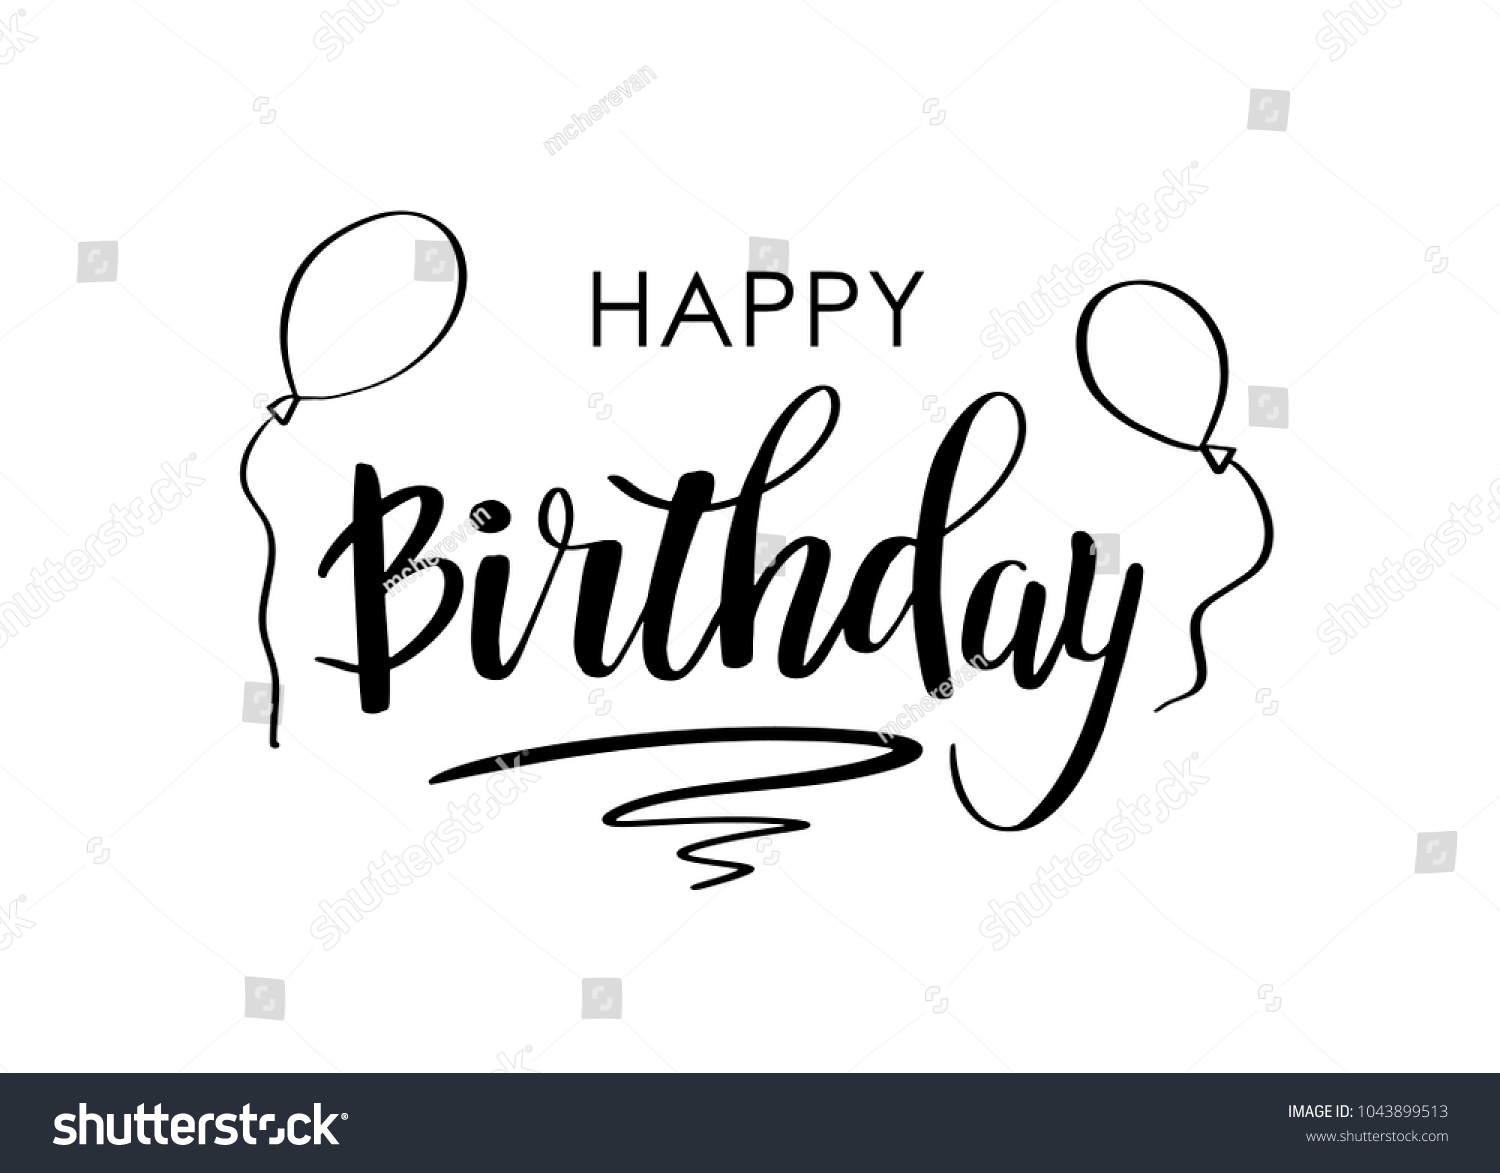 Happy birthday greeting card lettering design stock vector happy birthday greeting card with lettering design calligraphy text happy birthday and air balloons on kristyandbryce Image collections